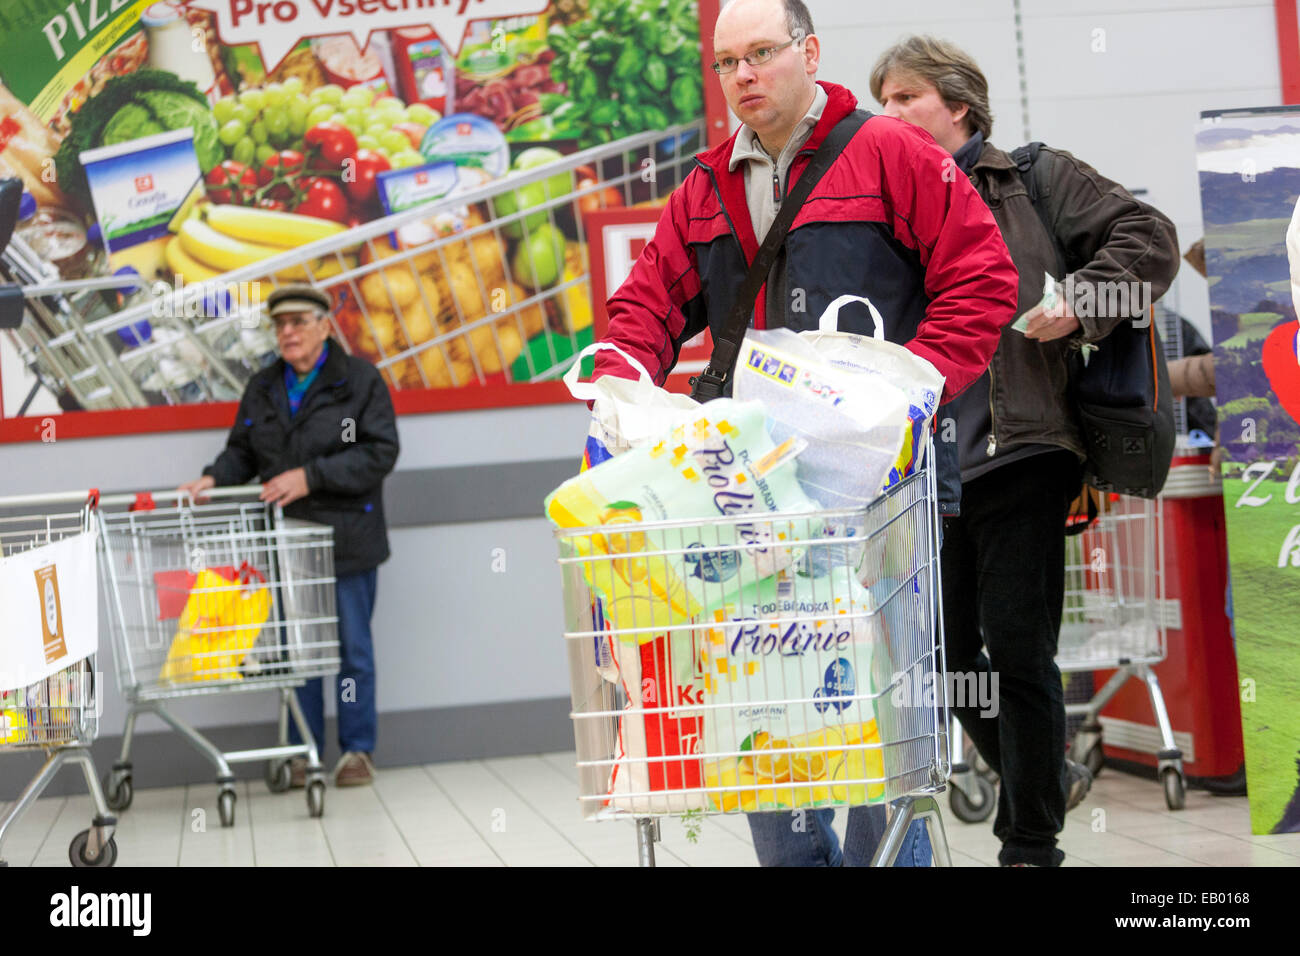 People shopping in the supermarket, Prague, Czech Republic Europe Stock Photo